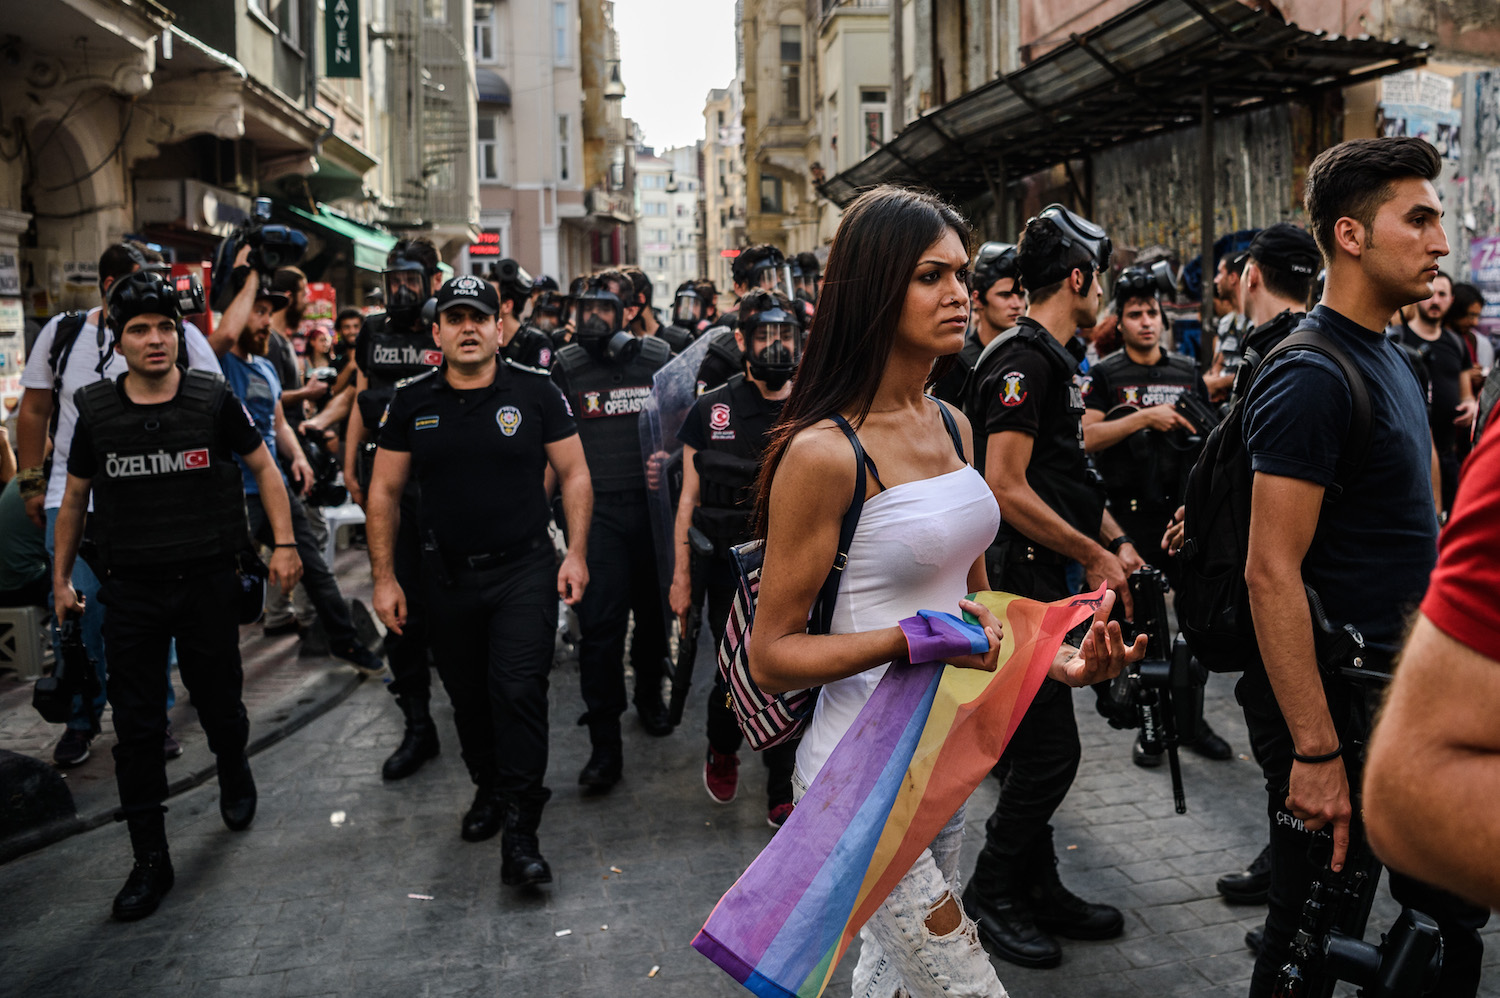 "A woman holds a rainbow flag as Turkish anti-riot police officers disperse demonstrators gathered for a rally staged by the LGBT community on Istiklal avenue in Istanbul on June 19, 2016. Turkish riot police fired rubber bullets and tear gas to break up a rally staged by the LGBT community in Istanbul on June 19 in defiance of a ban. Several hundred police surrounded the main Taksim Square -- where all demonstrations have been banned since 2013 -- to prevent the ""Trans Pride"" event taking place during Ramadan. / AFP / OZAN KOSE (Photo credit should read OZAN KOSE/AFP/Getty Images)"